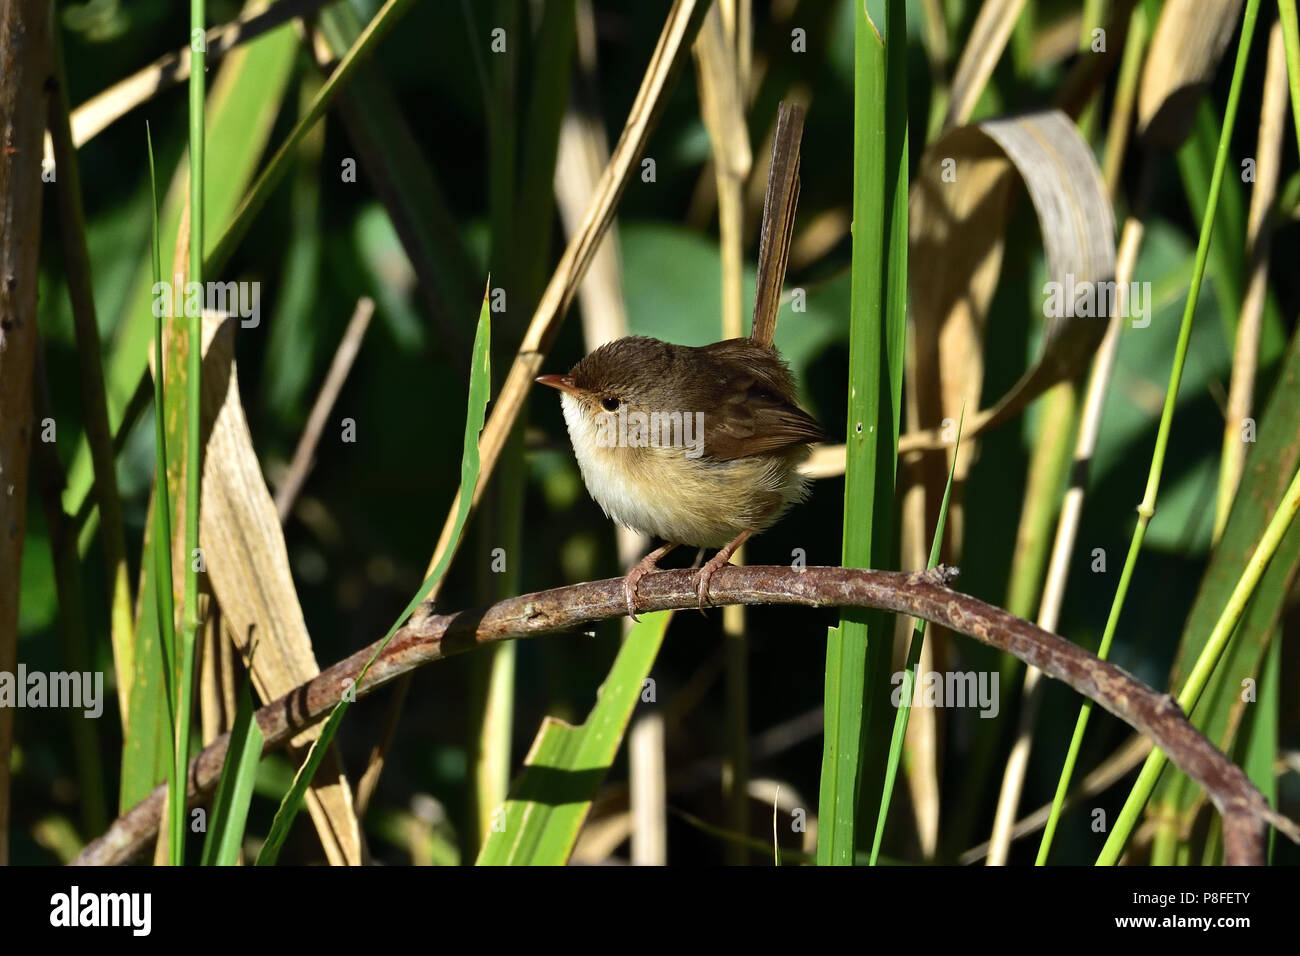 An Australian, Queensland Female Red-backed Fairy-wren ( Malurus melanocephalus ) perched on a tree branch - Stock Image